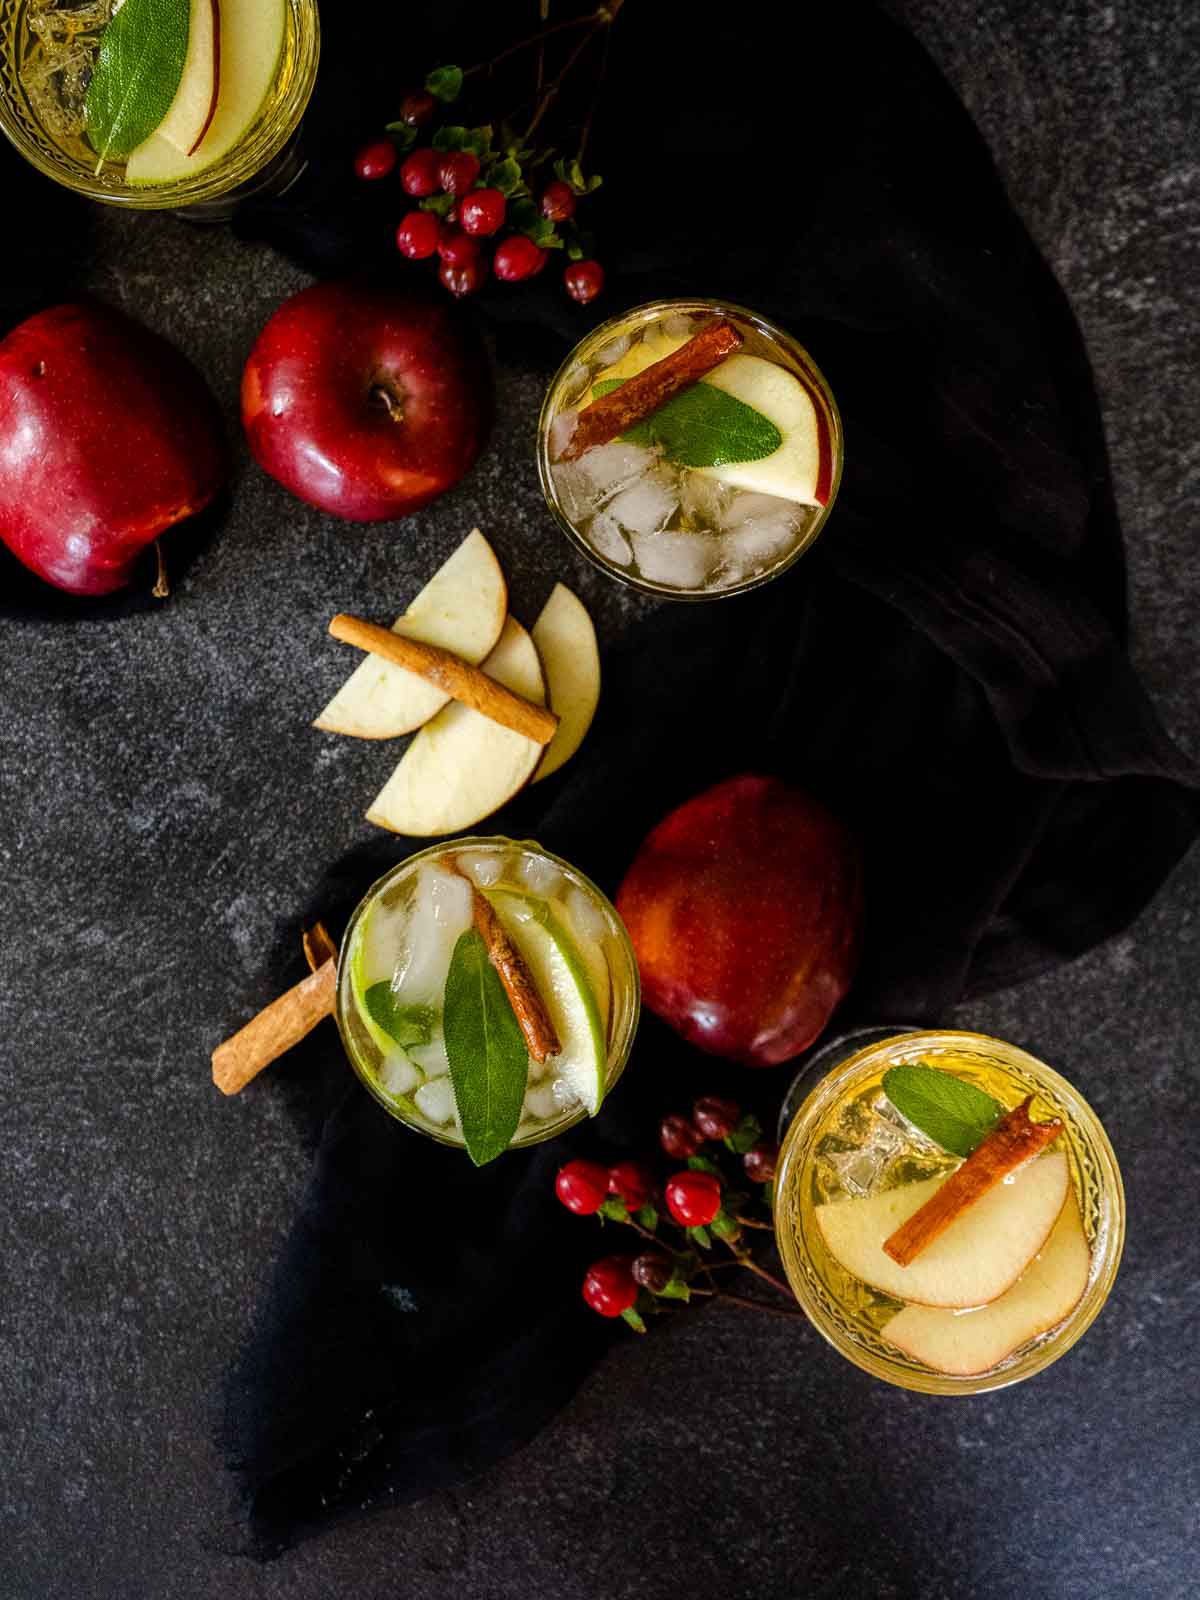 apples and cinnamon sticks with whiskey cocktail on black background